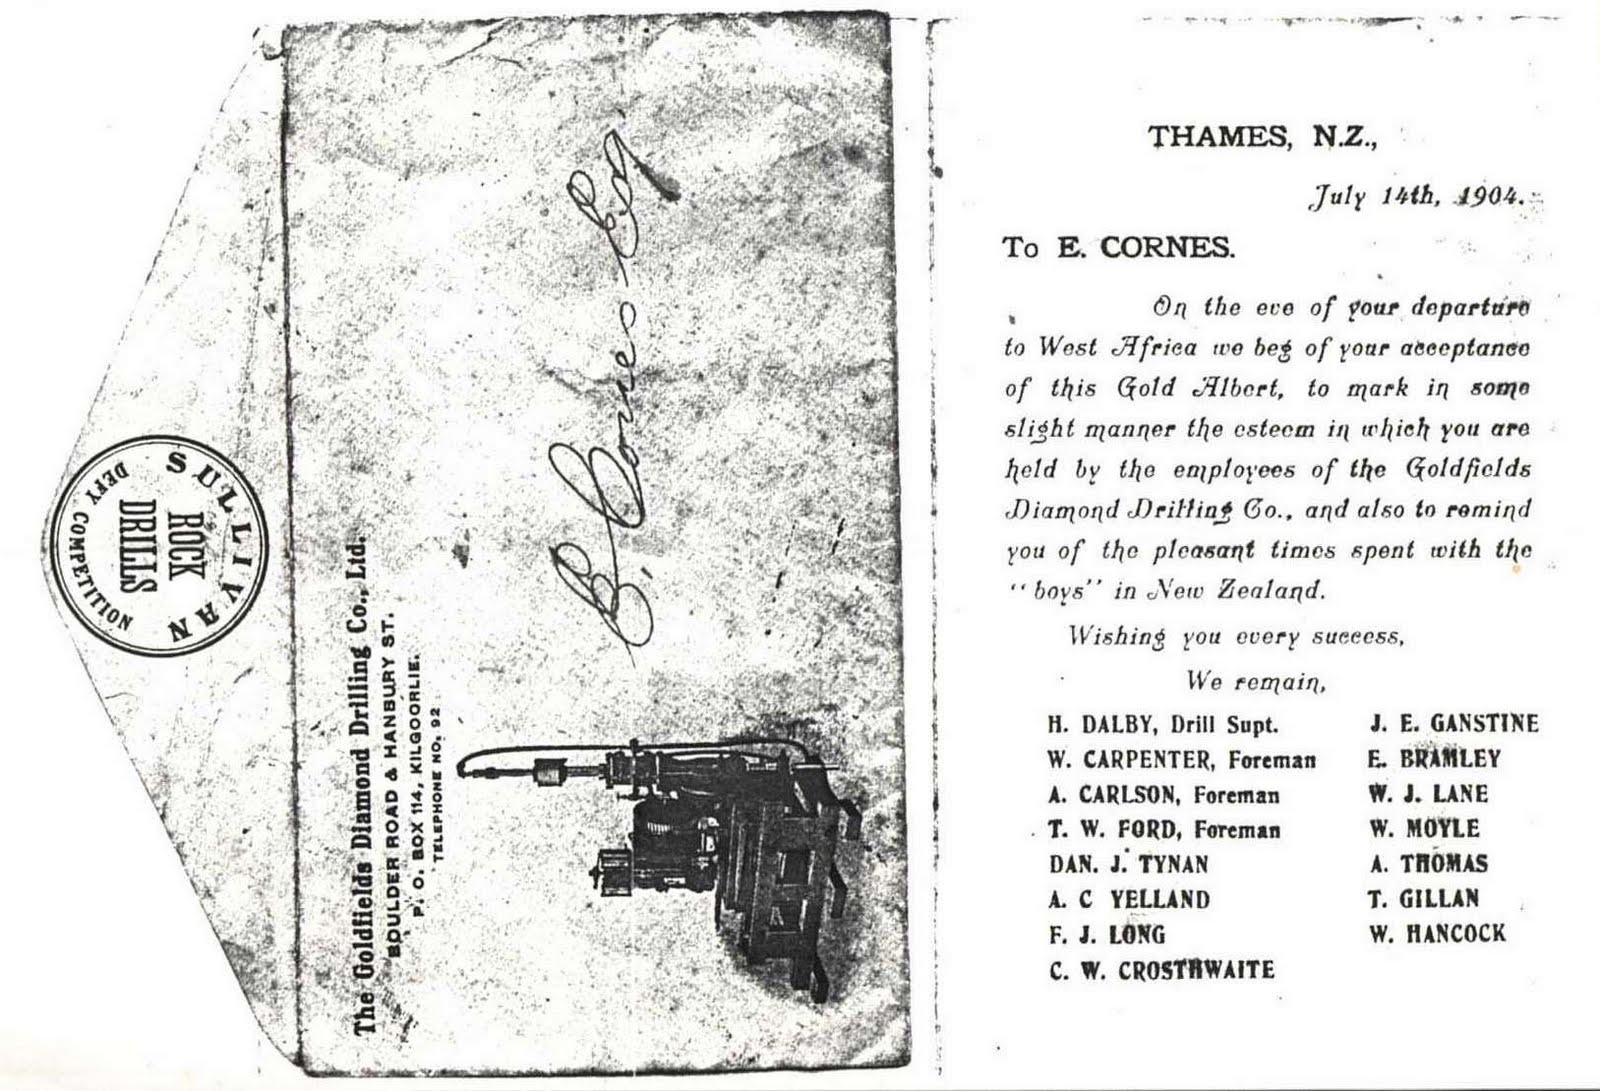 Thames NZ: Genealogy & History Resources: More Thames